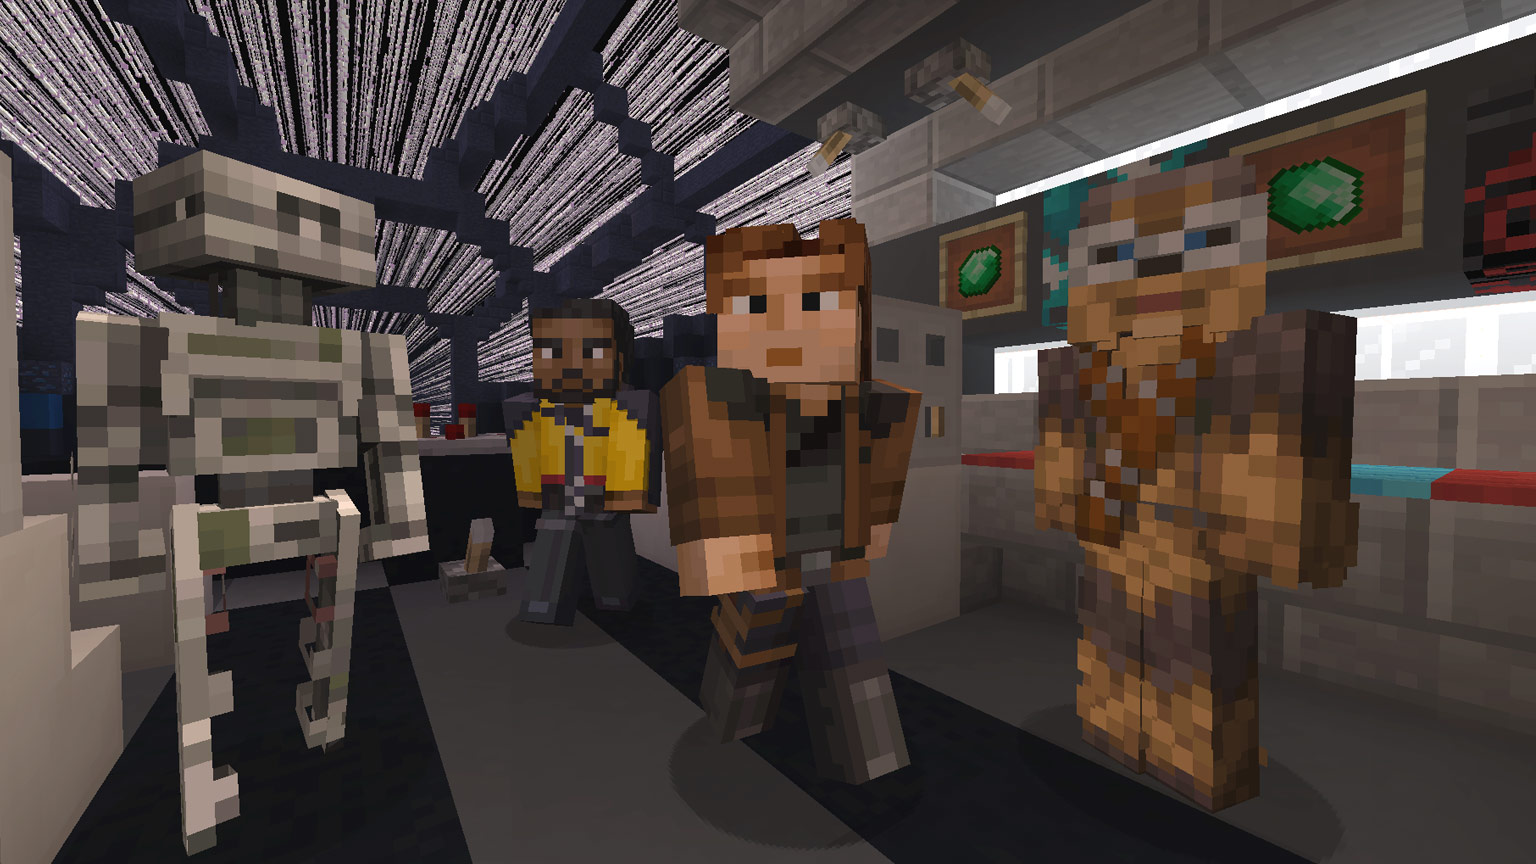 Tips for building the millennium falcon in minecraft